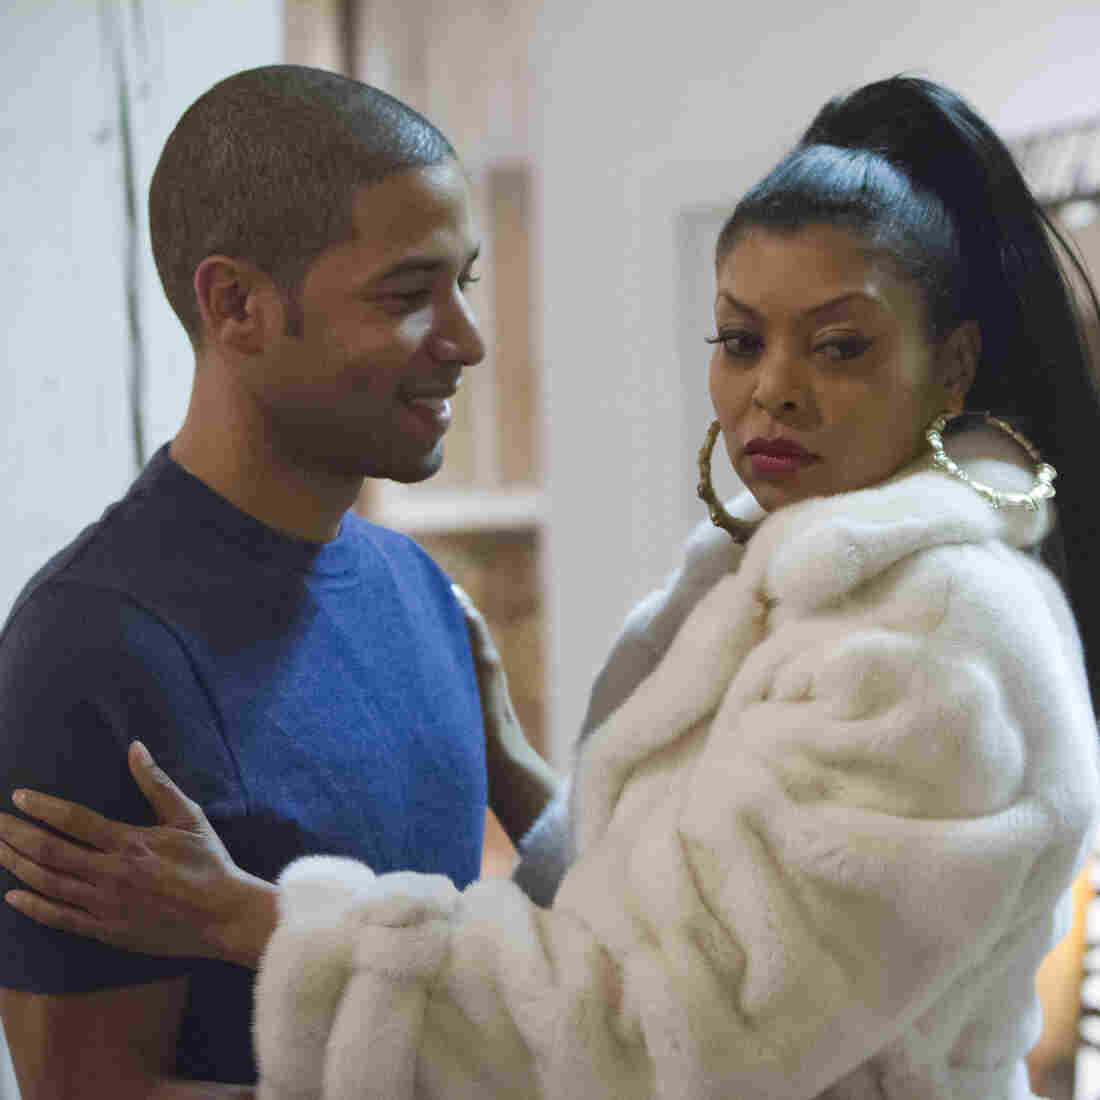 'Empire': A World Of Unbuttoned Shirts And Dishy Music Stories